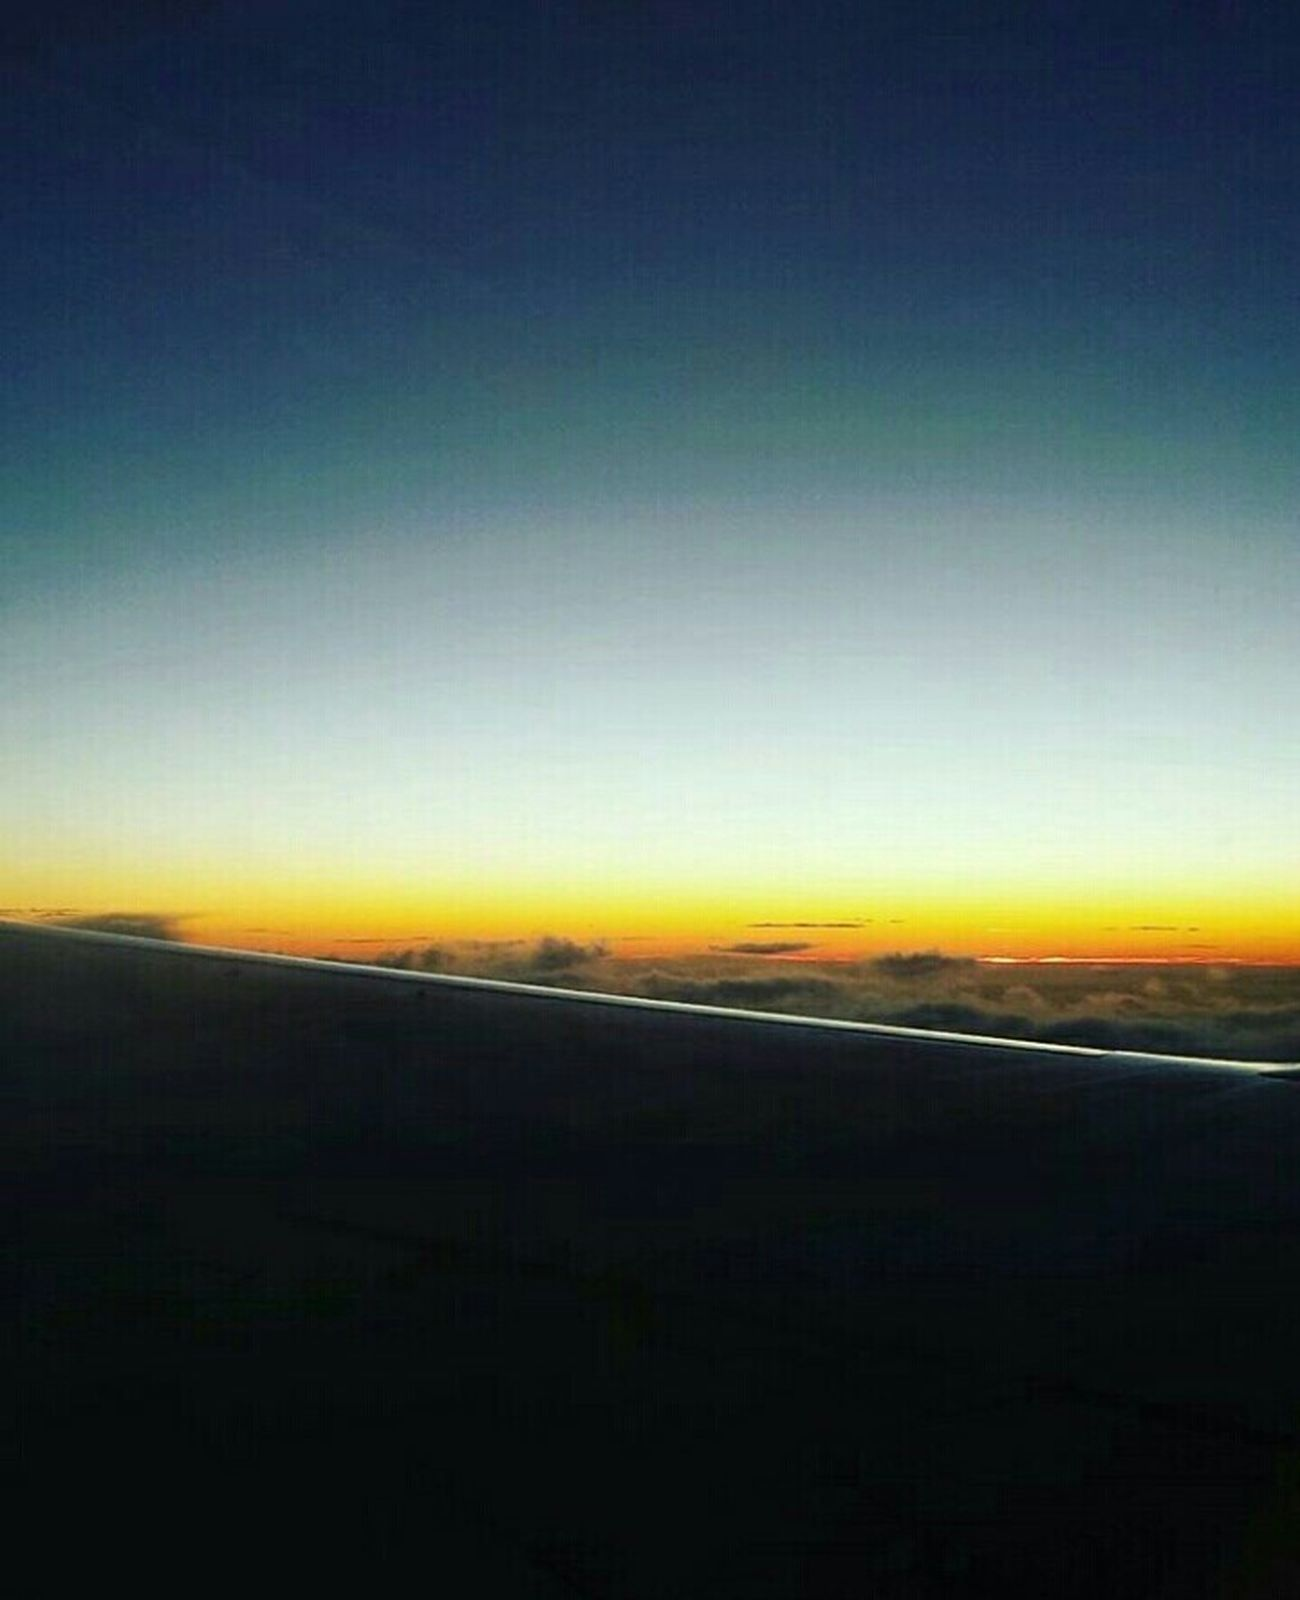 Gmorning🌞 No Filter AirPlane ✈ Love ♥ Ireland🍀 Enjoying Life